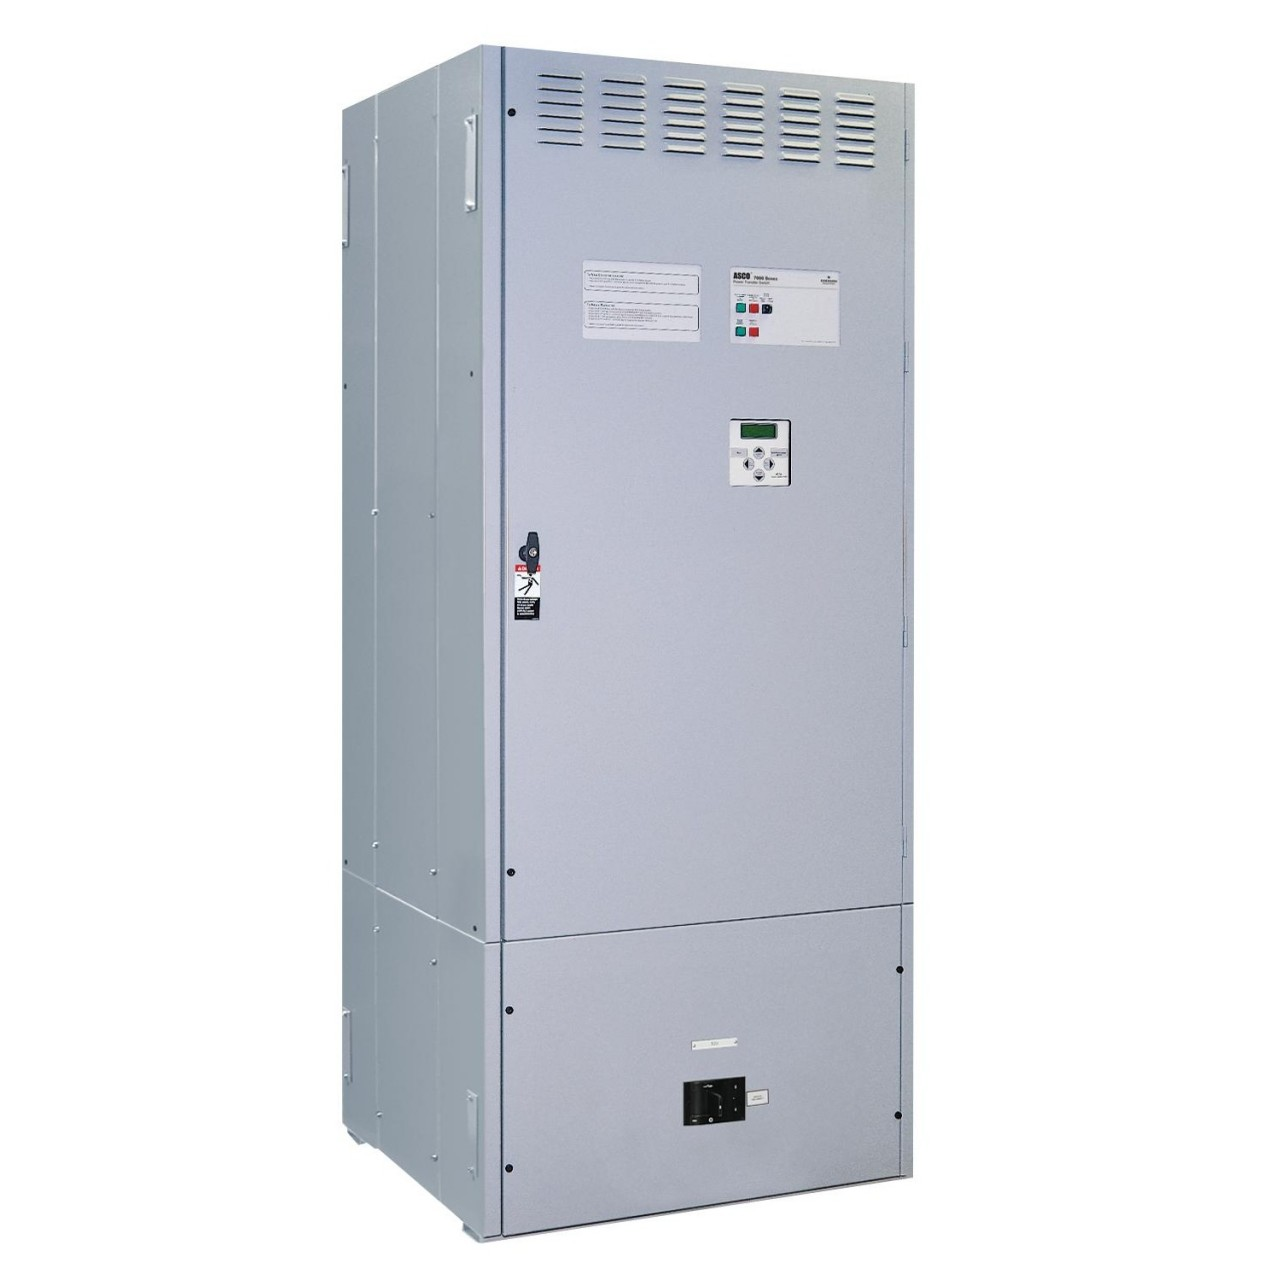 Asco 7000SE Auto Transfer Switch (3Ph, 1200A)